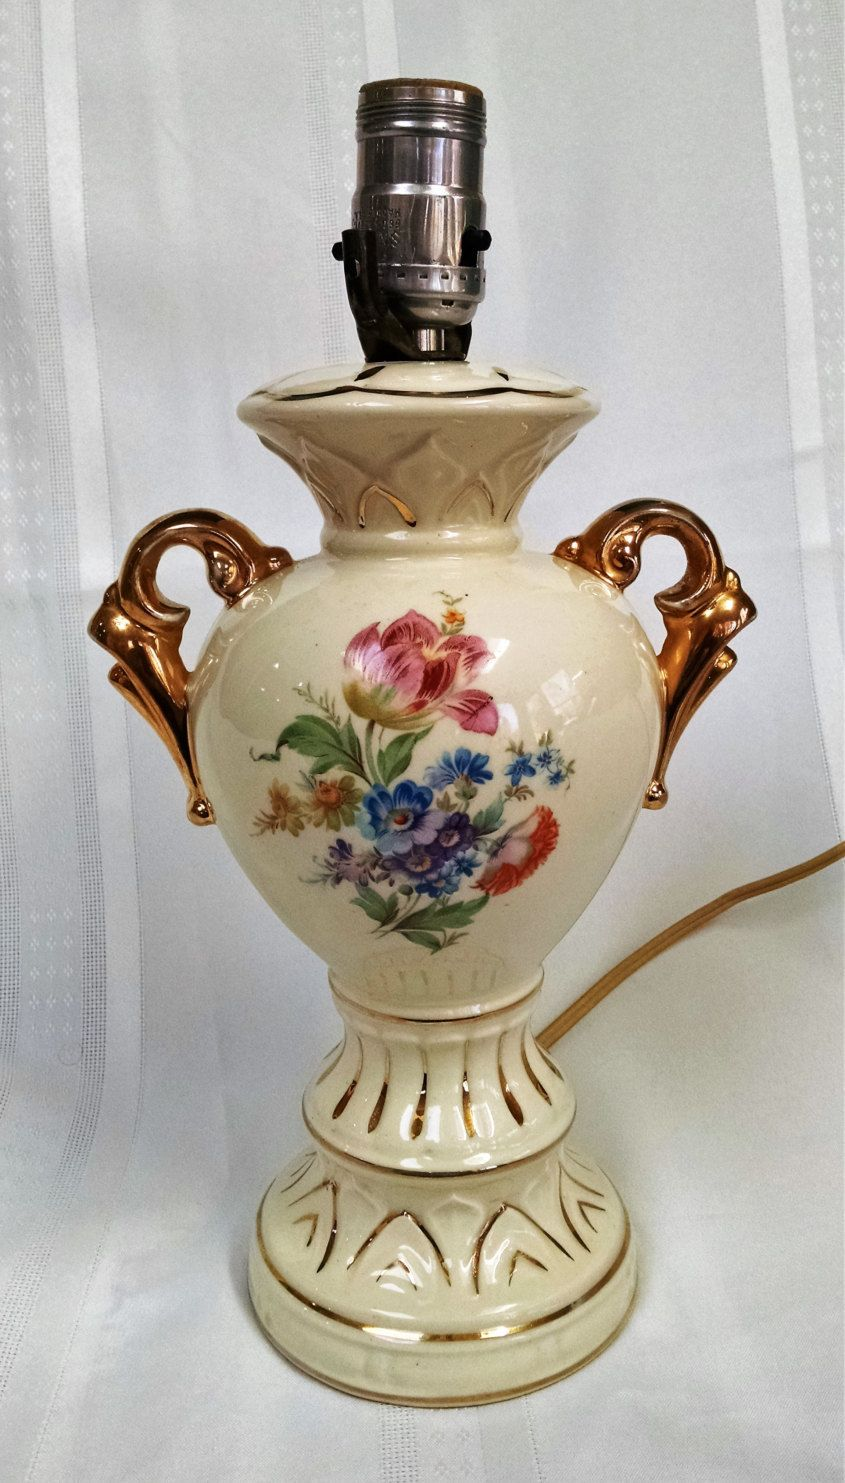 Vintage Ceramic China Lamp With Floral Design And Ornate Gold Trim Table Lamp By